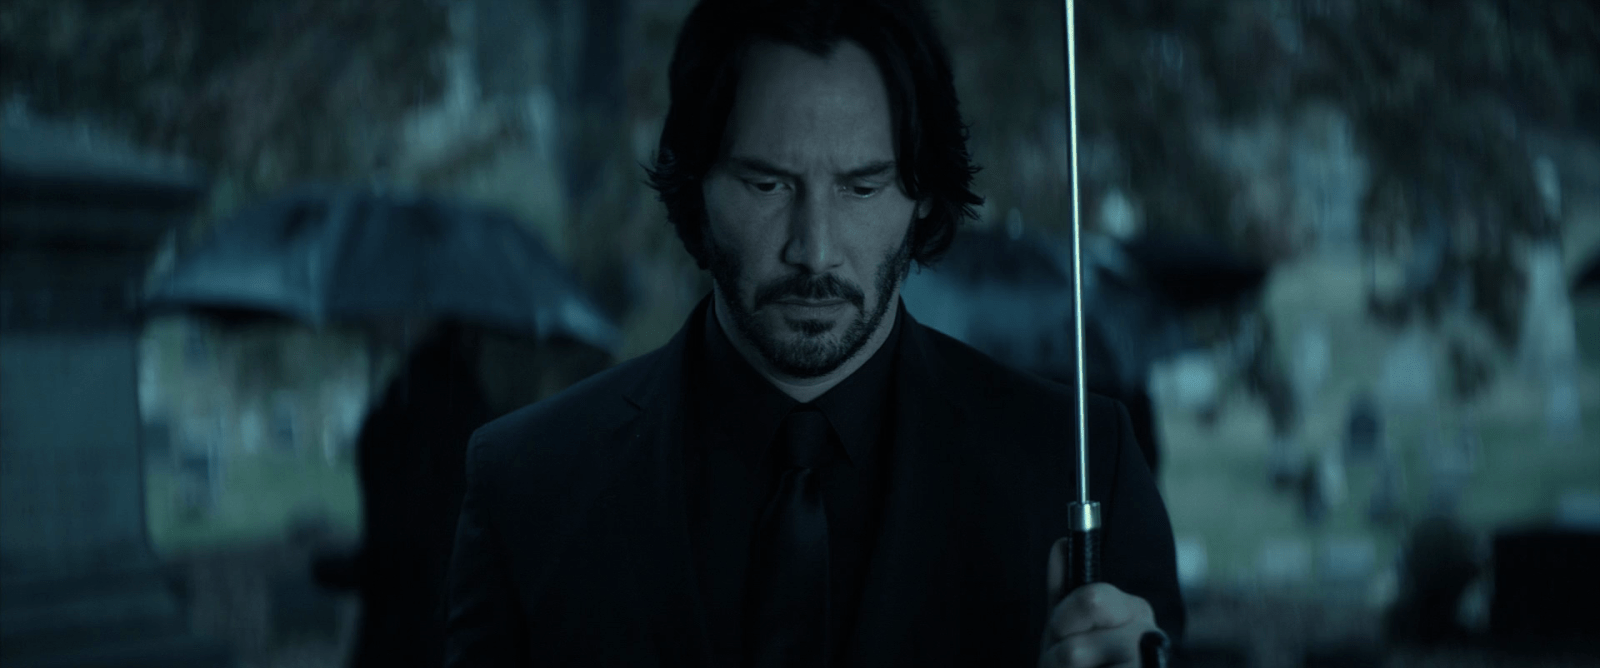 An emotional condition motivating John Wick (2014): insuperable grief.